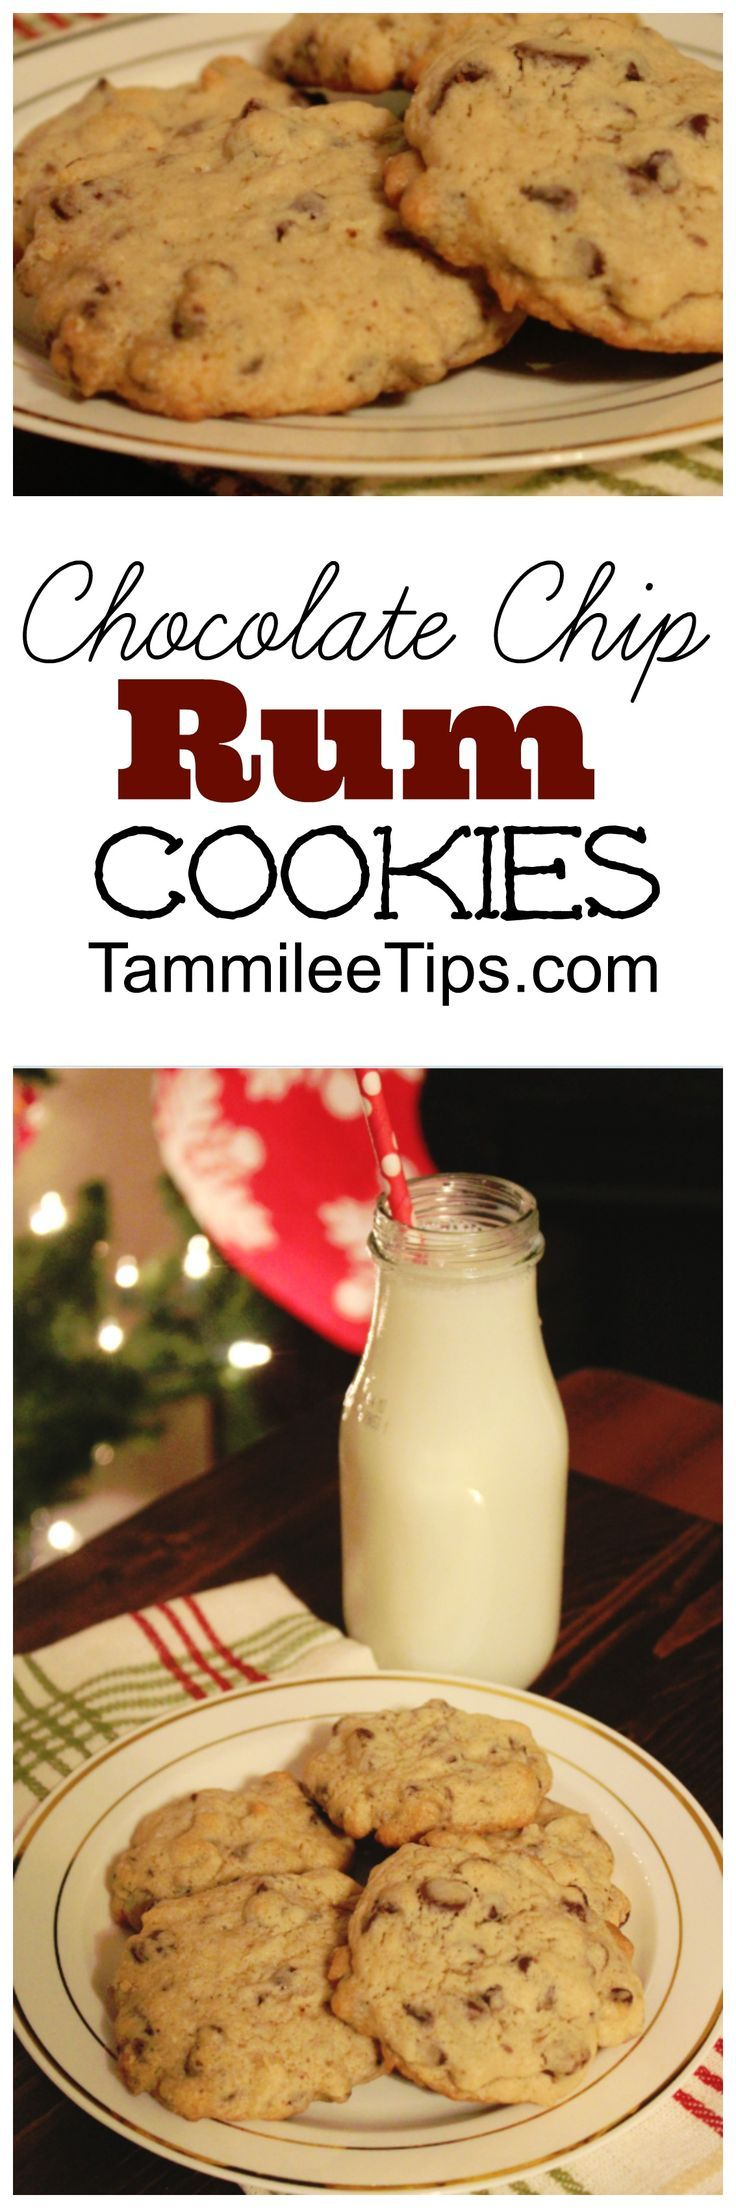 Chocolate Chip Rum cookies recipe perfect for Christmas and holiday parties! Add a bit of fun to your holiday cookies!